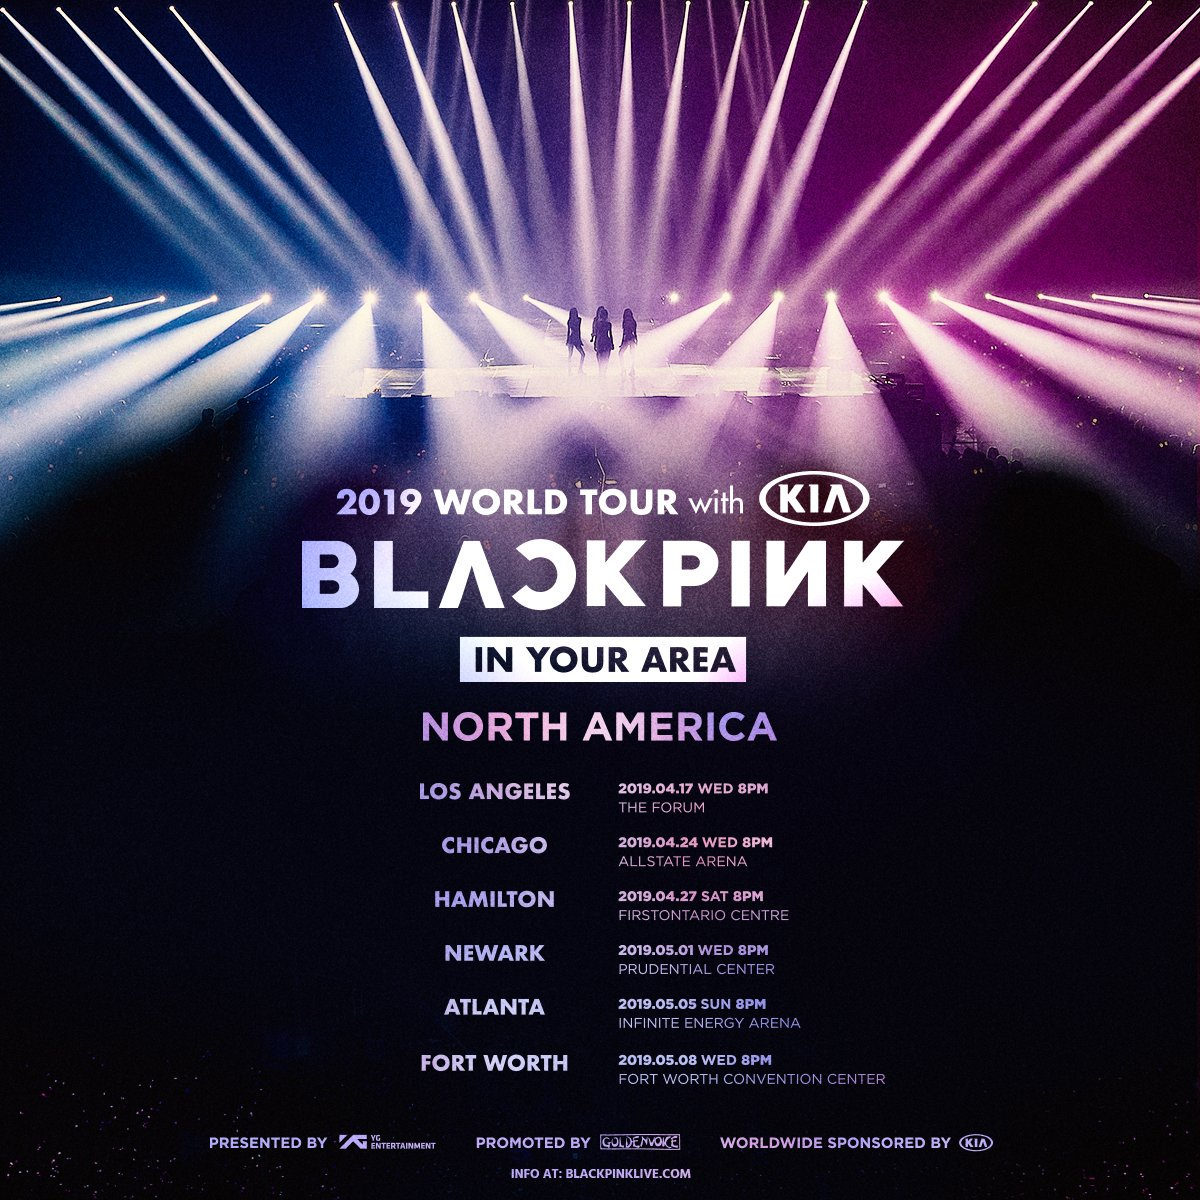 Upcoming World Tour Dates That Are Stressing K-Pop Fans Out